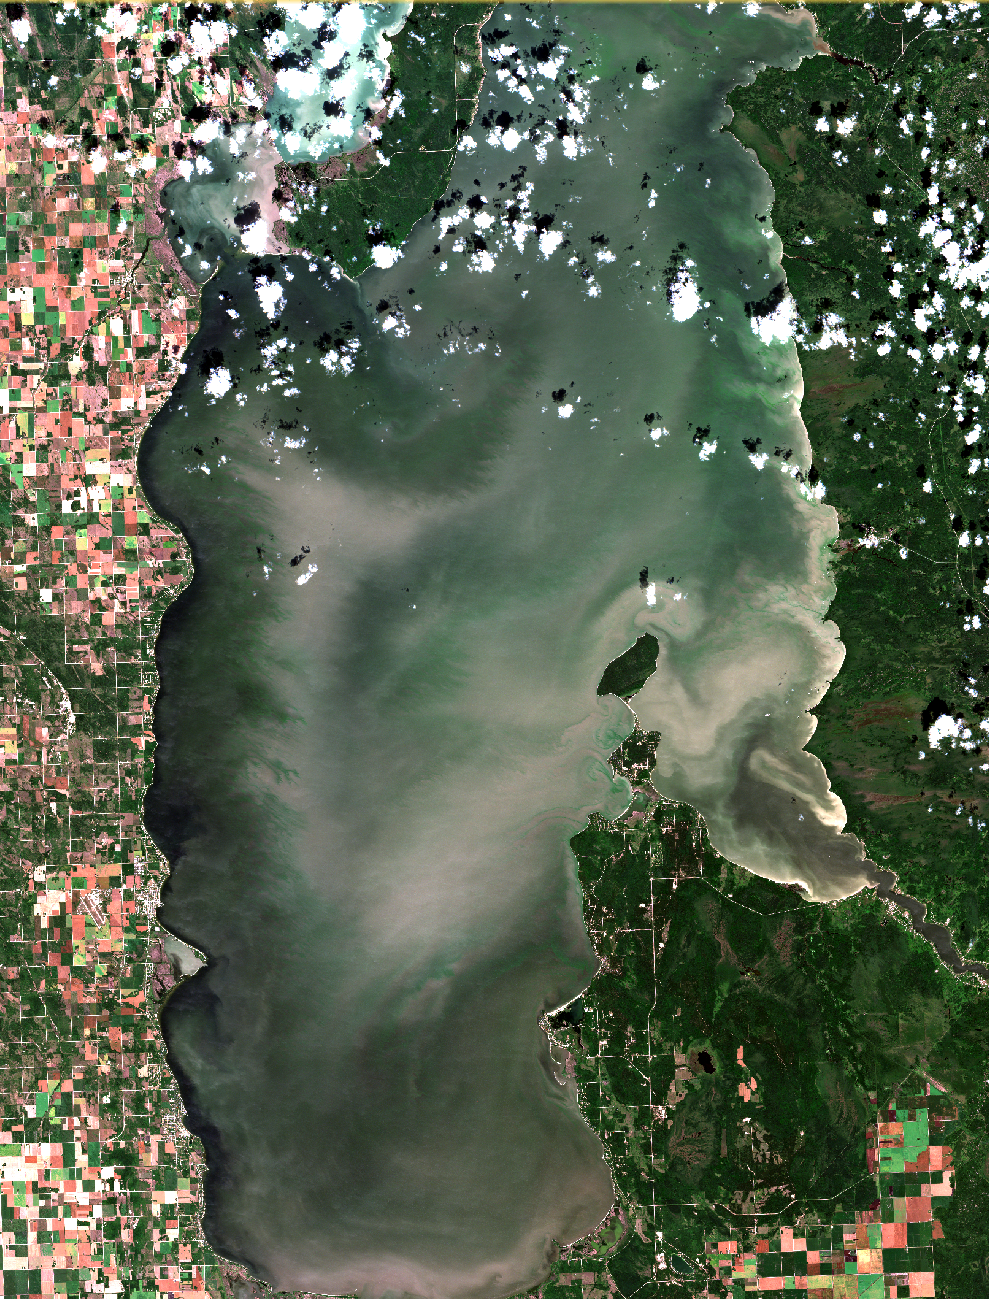 August 19, 2019. Westerlies continue to extend this summers dominant algal patterns. The dark band of water, which now extends along the entire west shore, indicates bottom water mainly free of algae has moved towards shore as offshore winds move the surface waters east. The algal blooms imaged here are strongly mixed in the water as this image was captured after strong west winds on Sunday August 18, less than one day before the satellite overpass. The intensity of these blooms look a bit more subdued when compared to images below captured in late July and early August under calm conditions when most of the algae floated to the surface. Bands of algae are now widespread in all areas of the basin, including Traverse Bay. The effects of winds on the blooms can are evident as branch-like patterns that be seen on an west-to-east axis, and in particular north of Gimli. If you are travelling to the lake the west beaches or Patricia Beach are the best option now. Most the east beaches are now exposed to varying amounts of algal blooms as the bands of algae move with the west wind. Winds later this week are forecast to shift east and then later south which may help the east-side this weekend. Click  here  to look at the high resolution image data and see the waves push blooms into the Hillside  Beach lagoon! Modied ESA data.